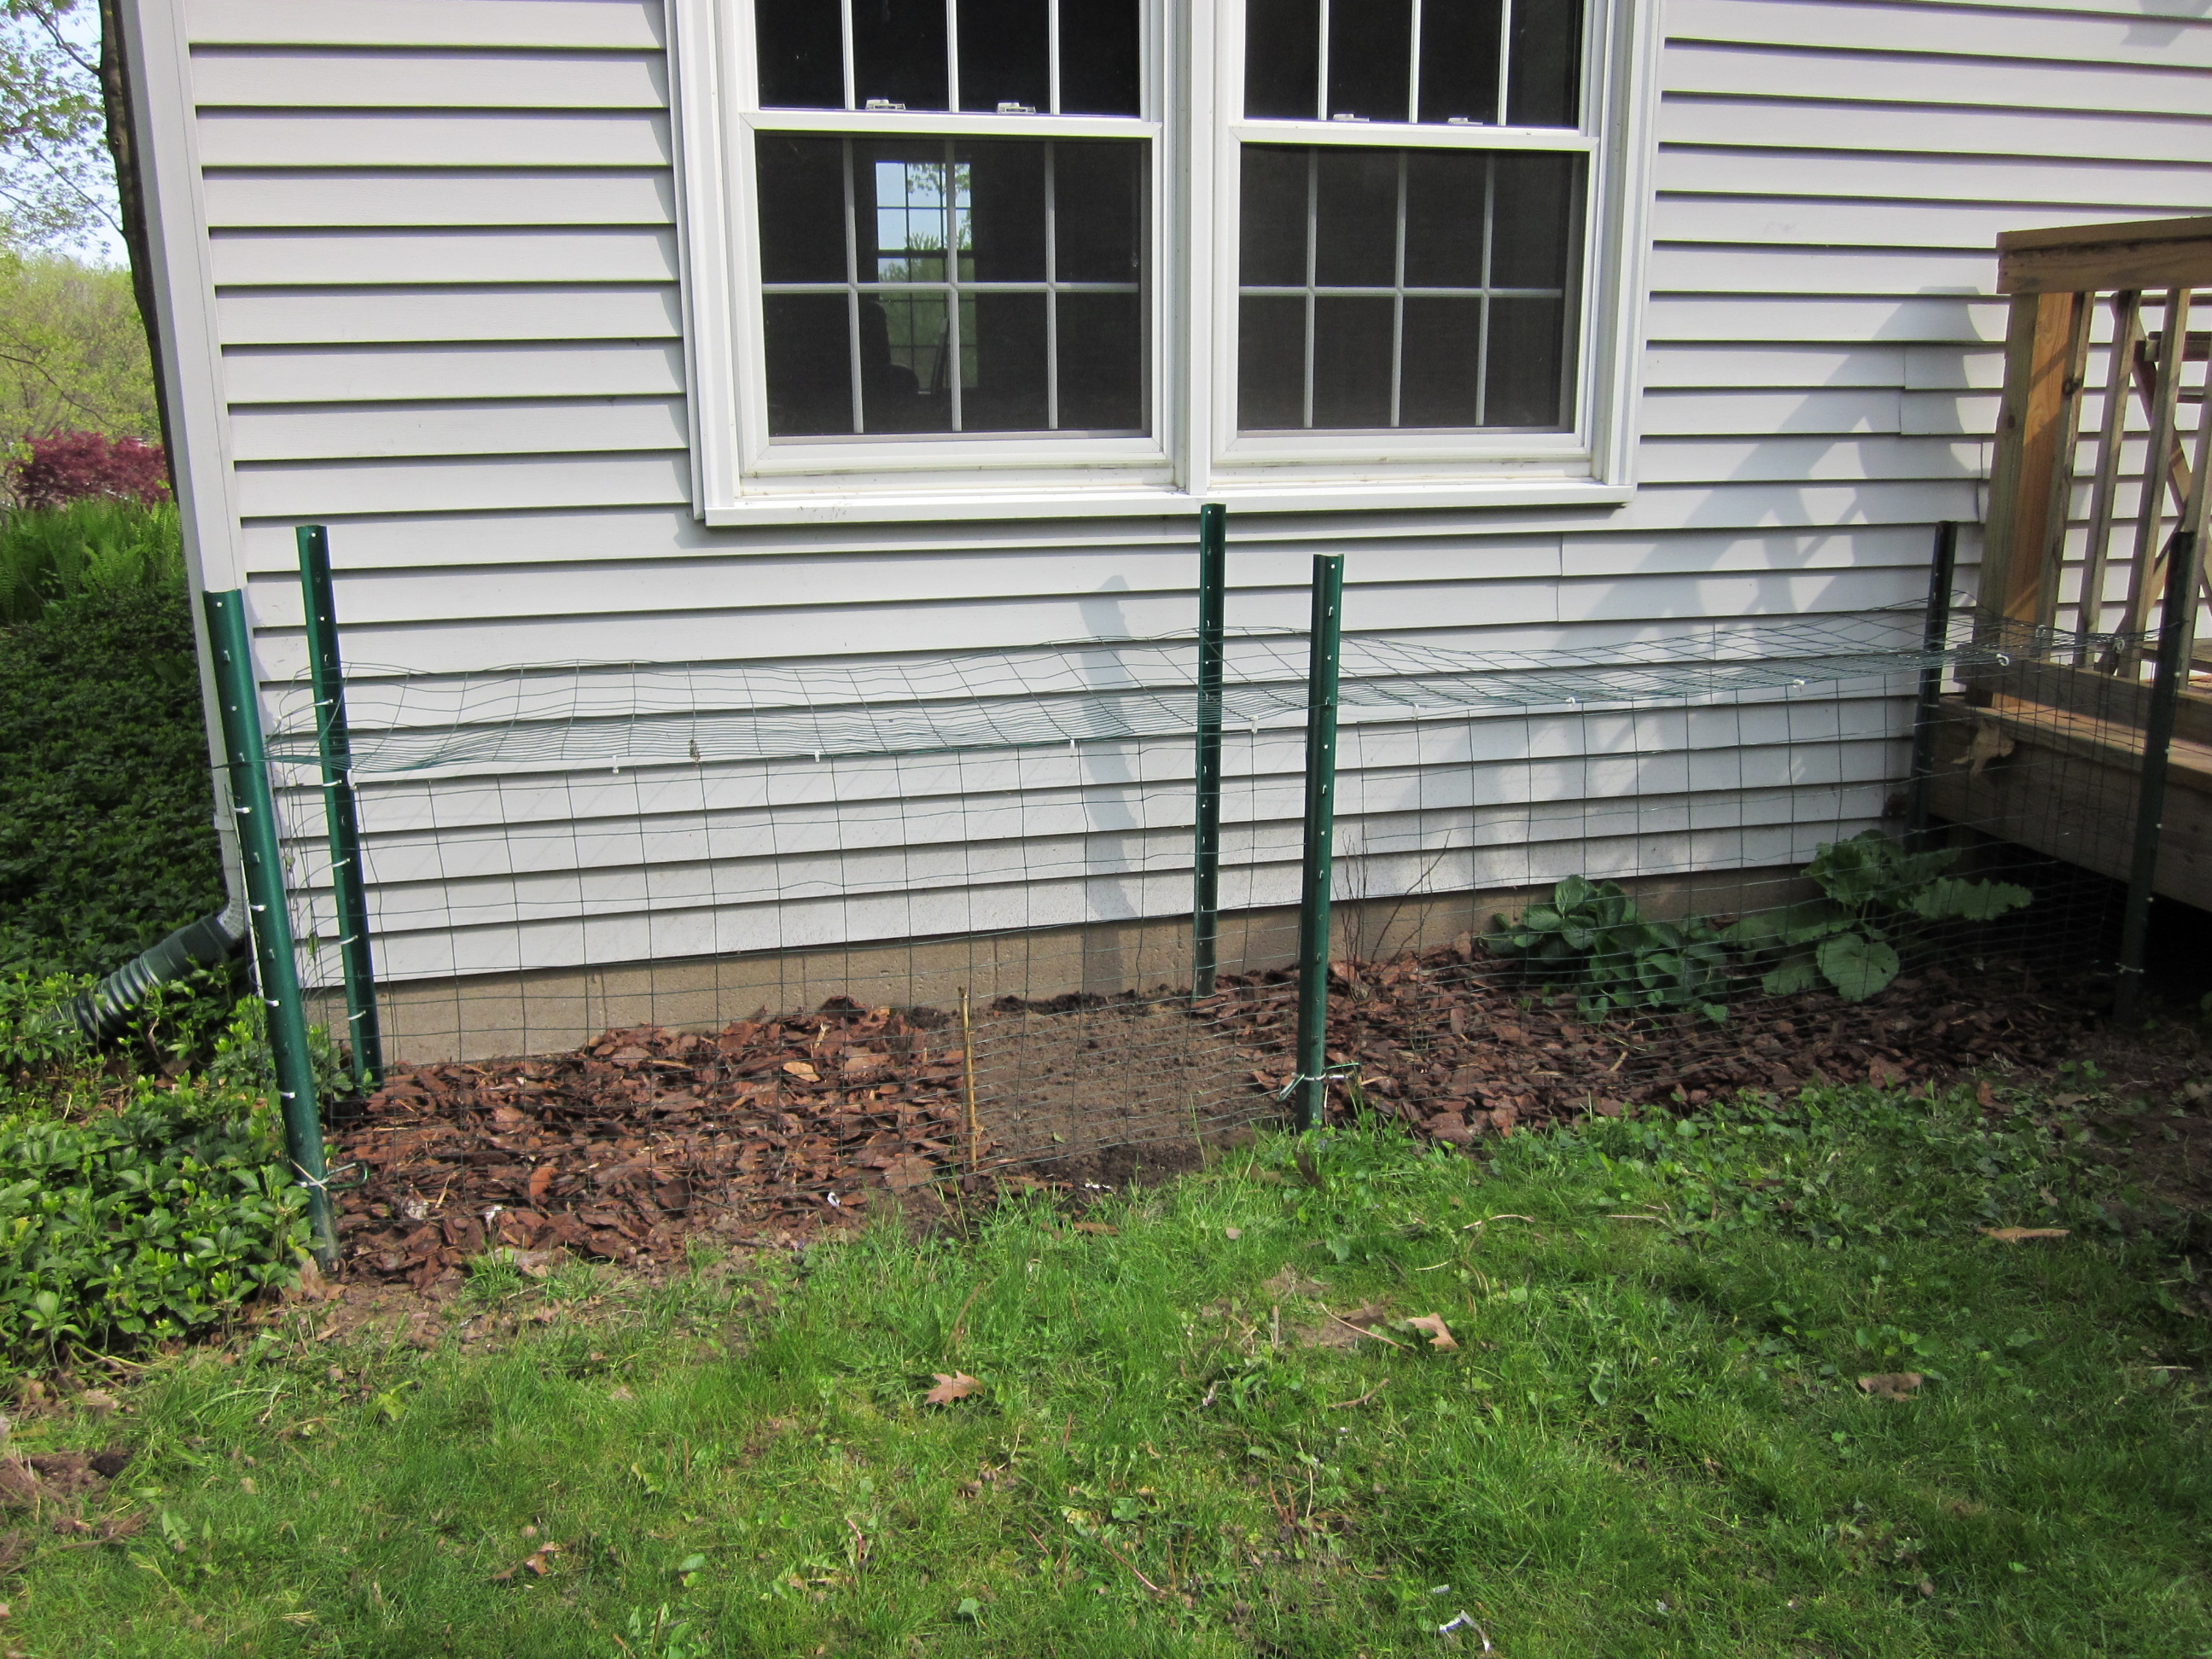 deerproof vegetable garden - Deer Proof Vegetable Garden Ideas